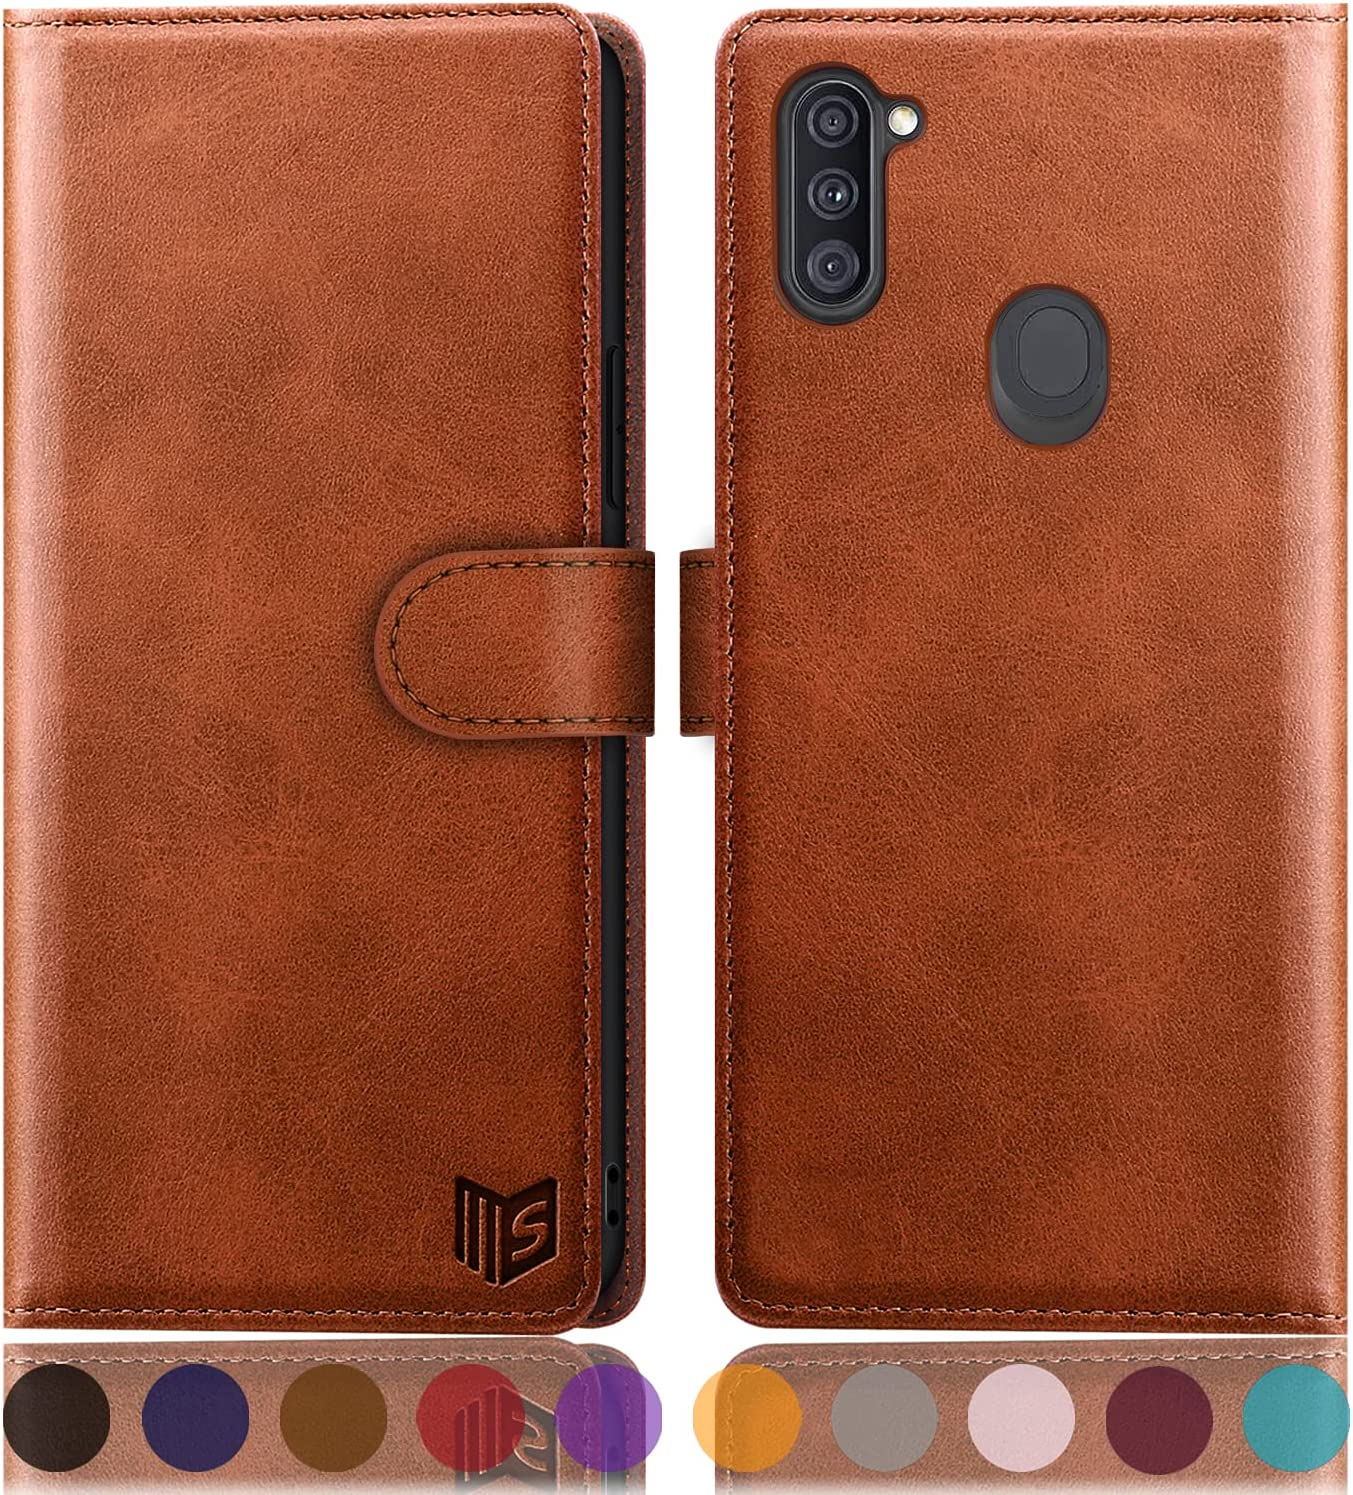 SUANPOT for Samsung Galaxy A11 with RFID Blocking Leather Wallet case Credit Card Holder, Flip Folio Book Phone case Shockproof Accessories Cover for Women Men for Samsung A11 case Wallet